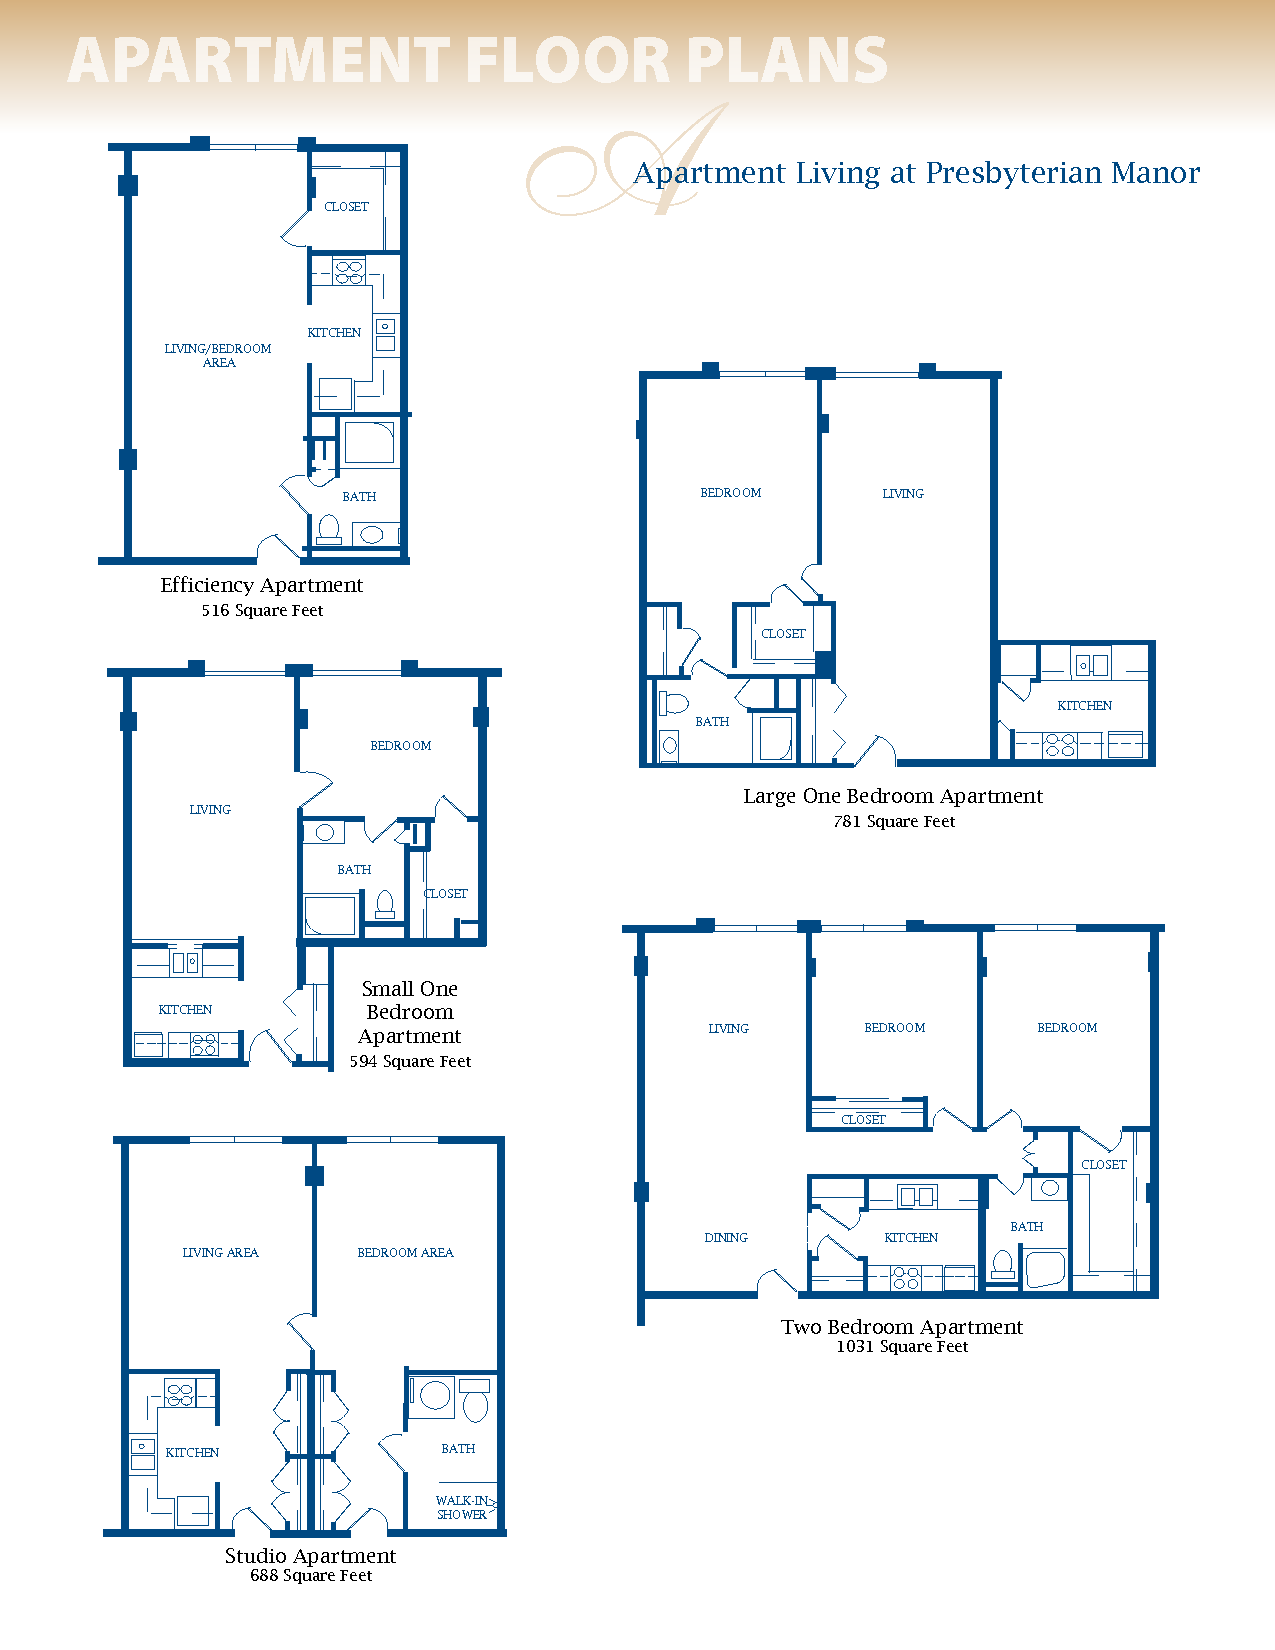 House Designs And Floor Plans - Studio Apartment Floor Plan Design ...